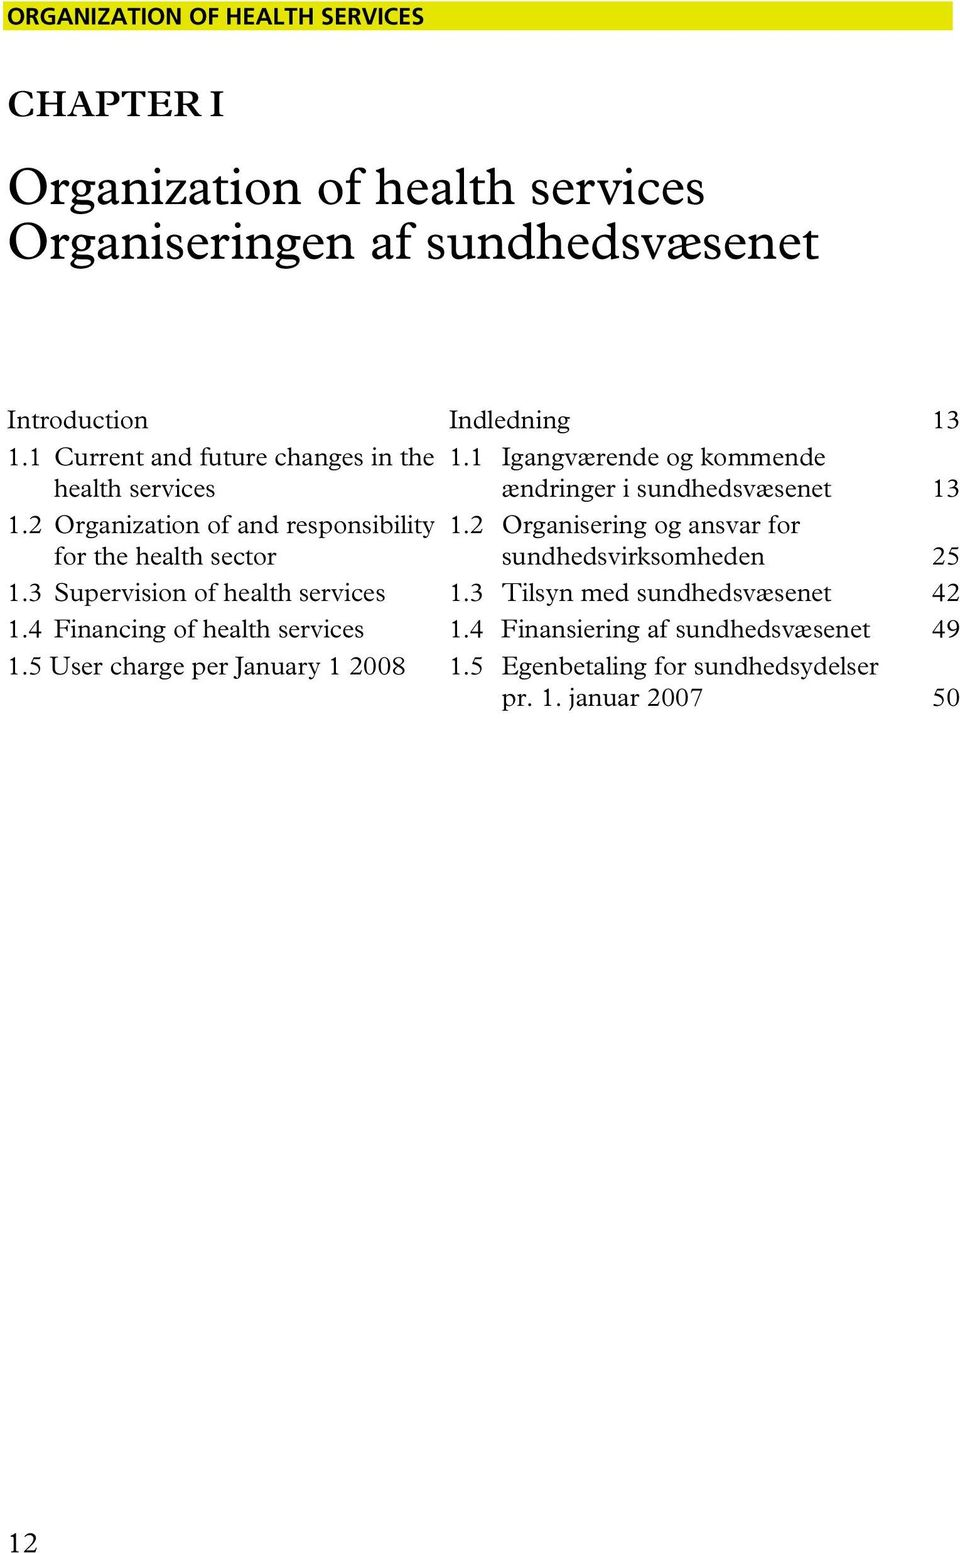 2 Organization of and responsibility 1.2 Organisering og ansvar for for the health sector sundhedsvirksomheden 25 1.3 Supervision of health services 1.